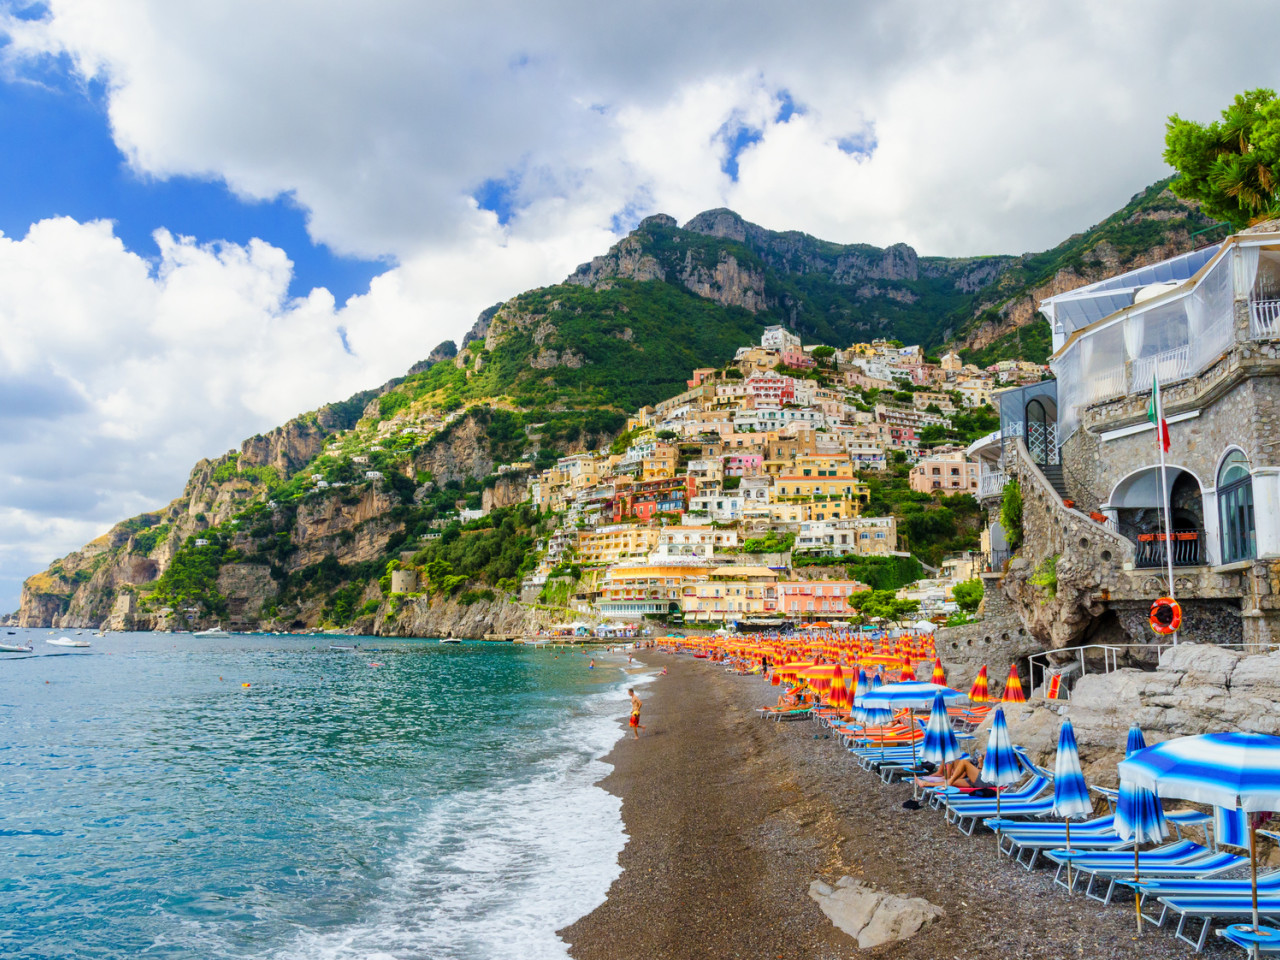 Positano, Pompeii shore excursion from Salerno| Star cars luxury tours